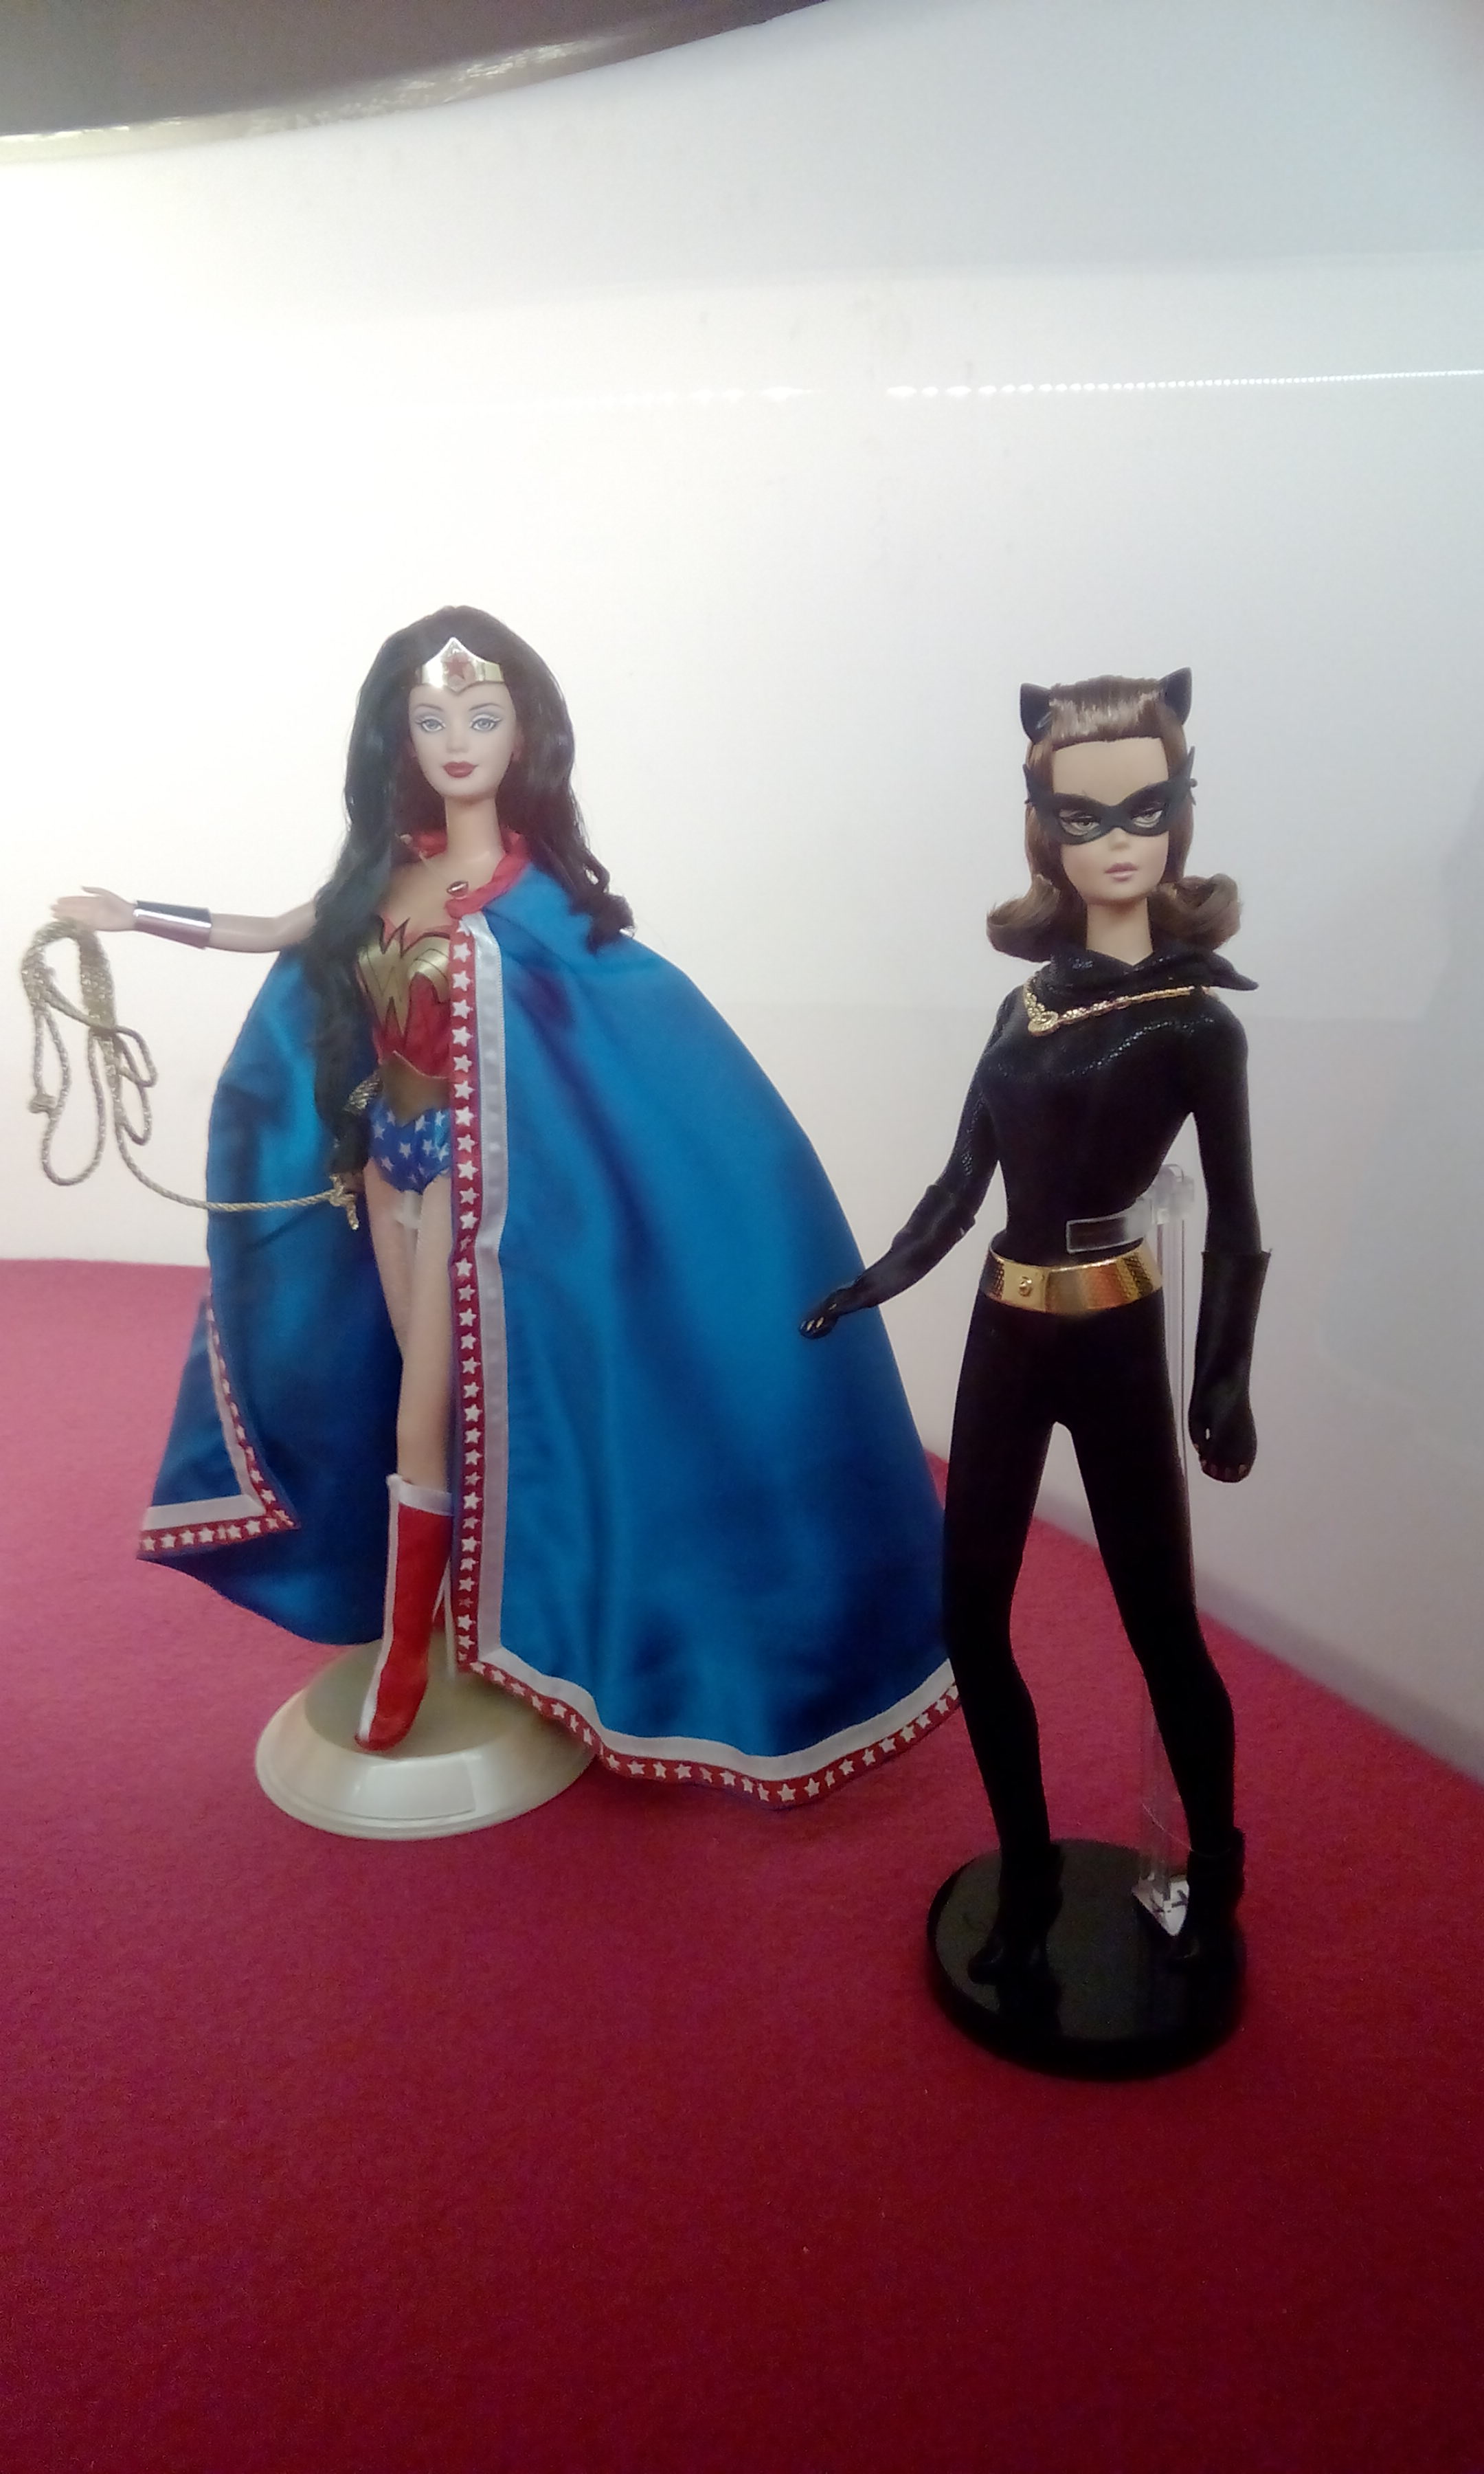 Wonder woman and Cat woman doll